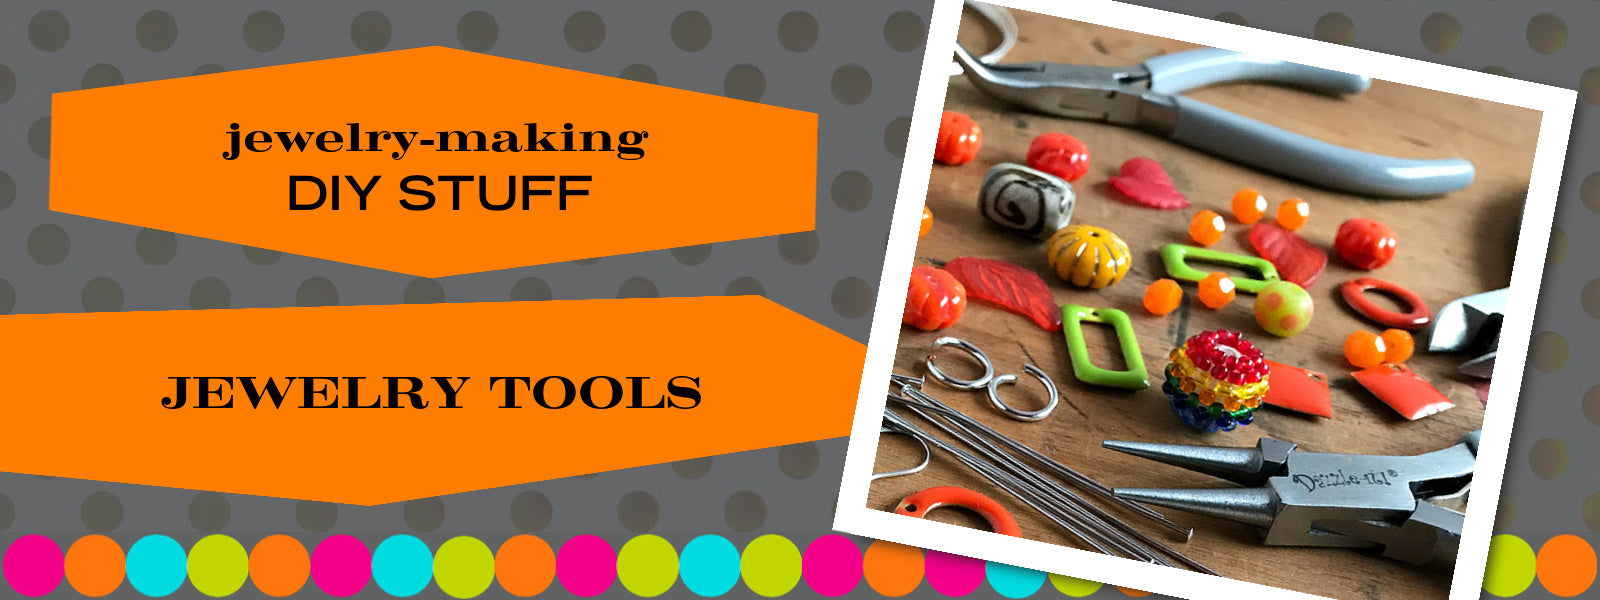 When it comes to making jewelry,if you want professional looking results, using Suzie Q Studio's jewelry-making tools will make the process infinitely easier!